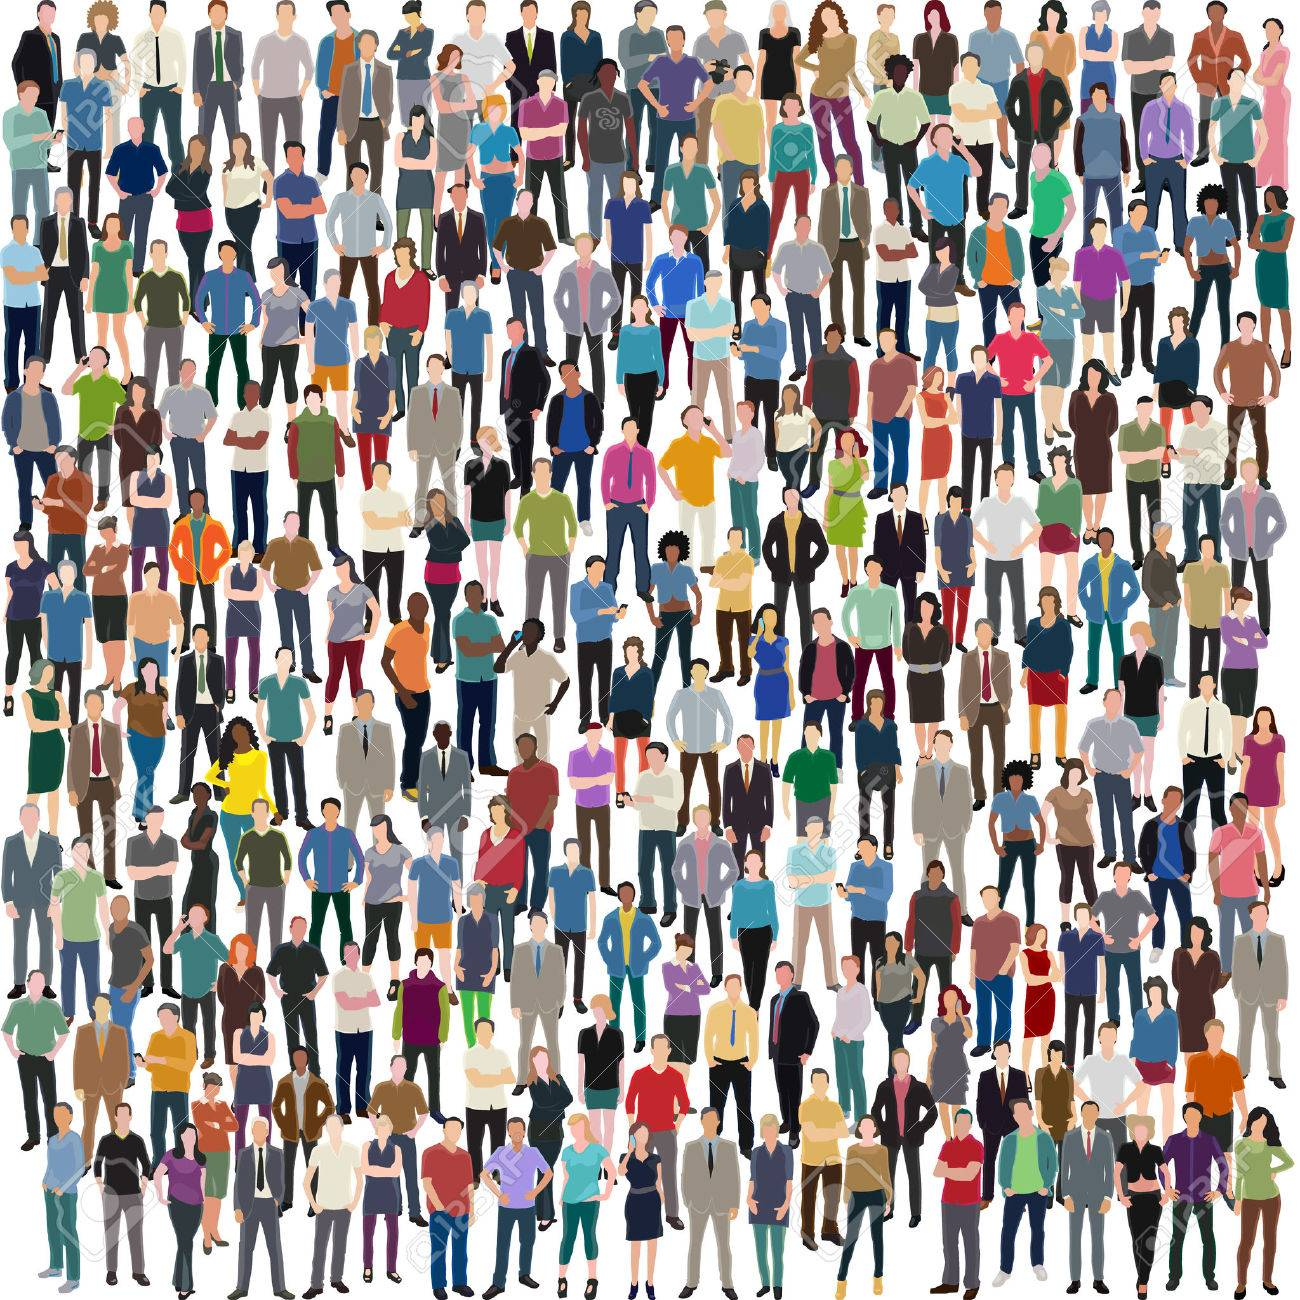 vector background with huge crowd of different standing people - 52490555